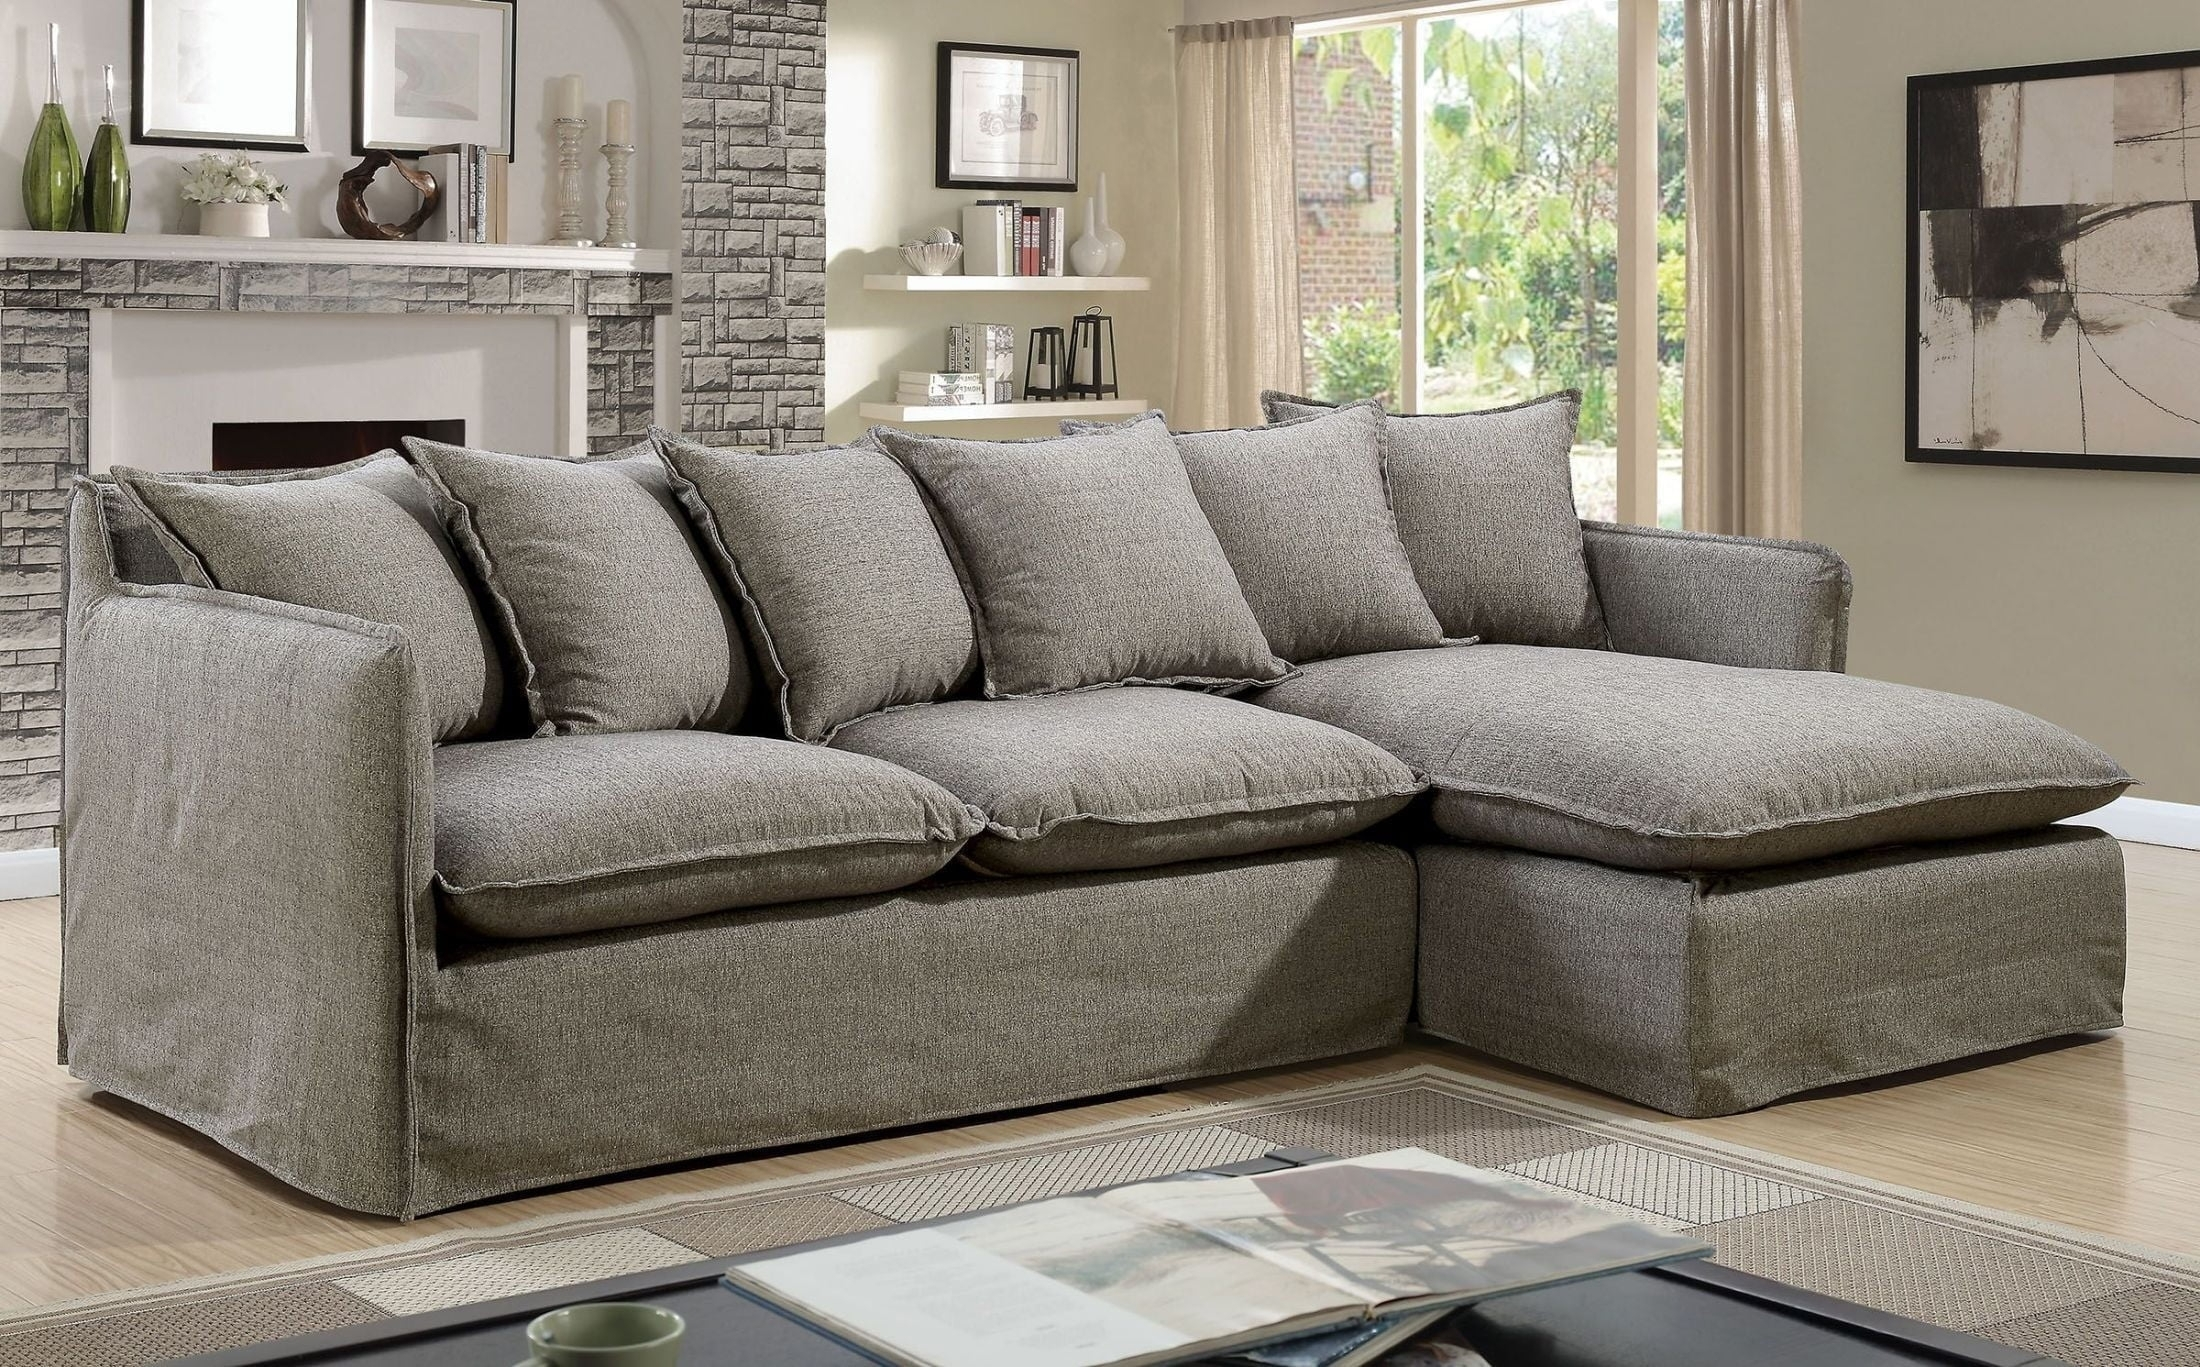 Rosanna Ii Gray Sectional From Furniture Of America | Coleman Furniture pertaining to Lucy Grey 2 Piece Sectionals With Laf Chaise (Image 25 of 30)